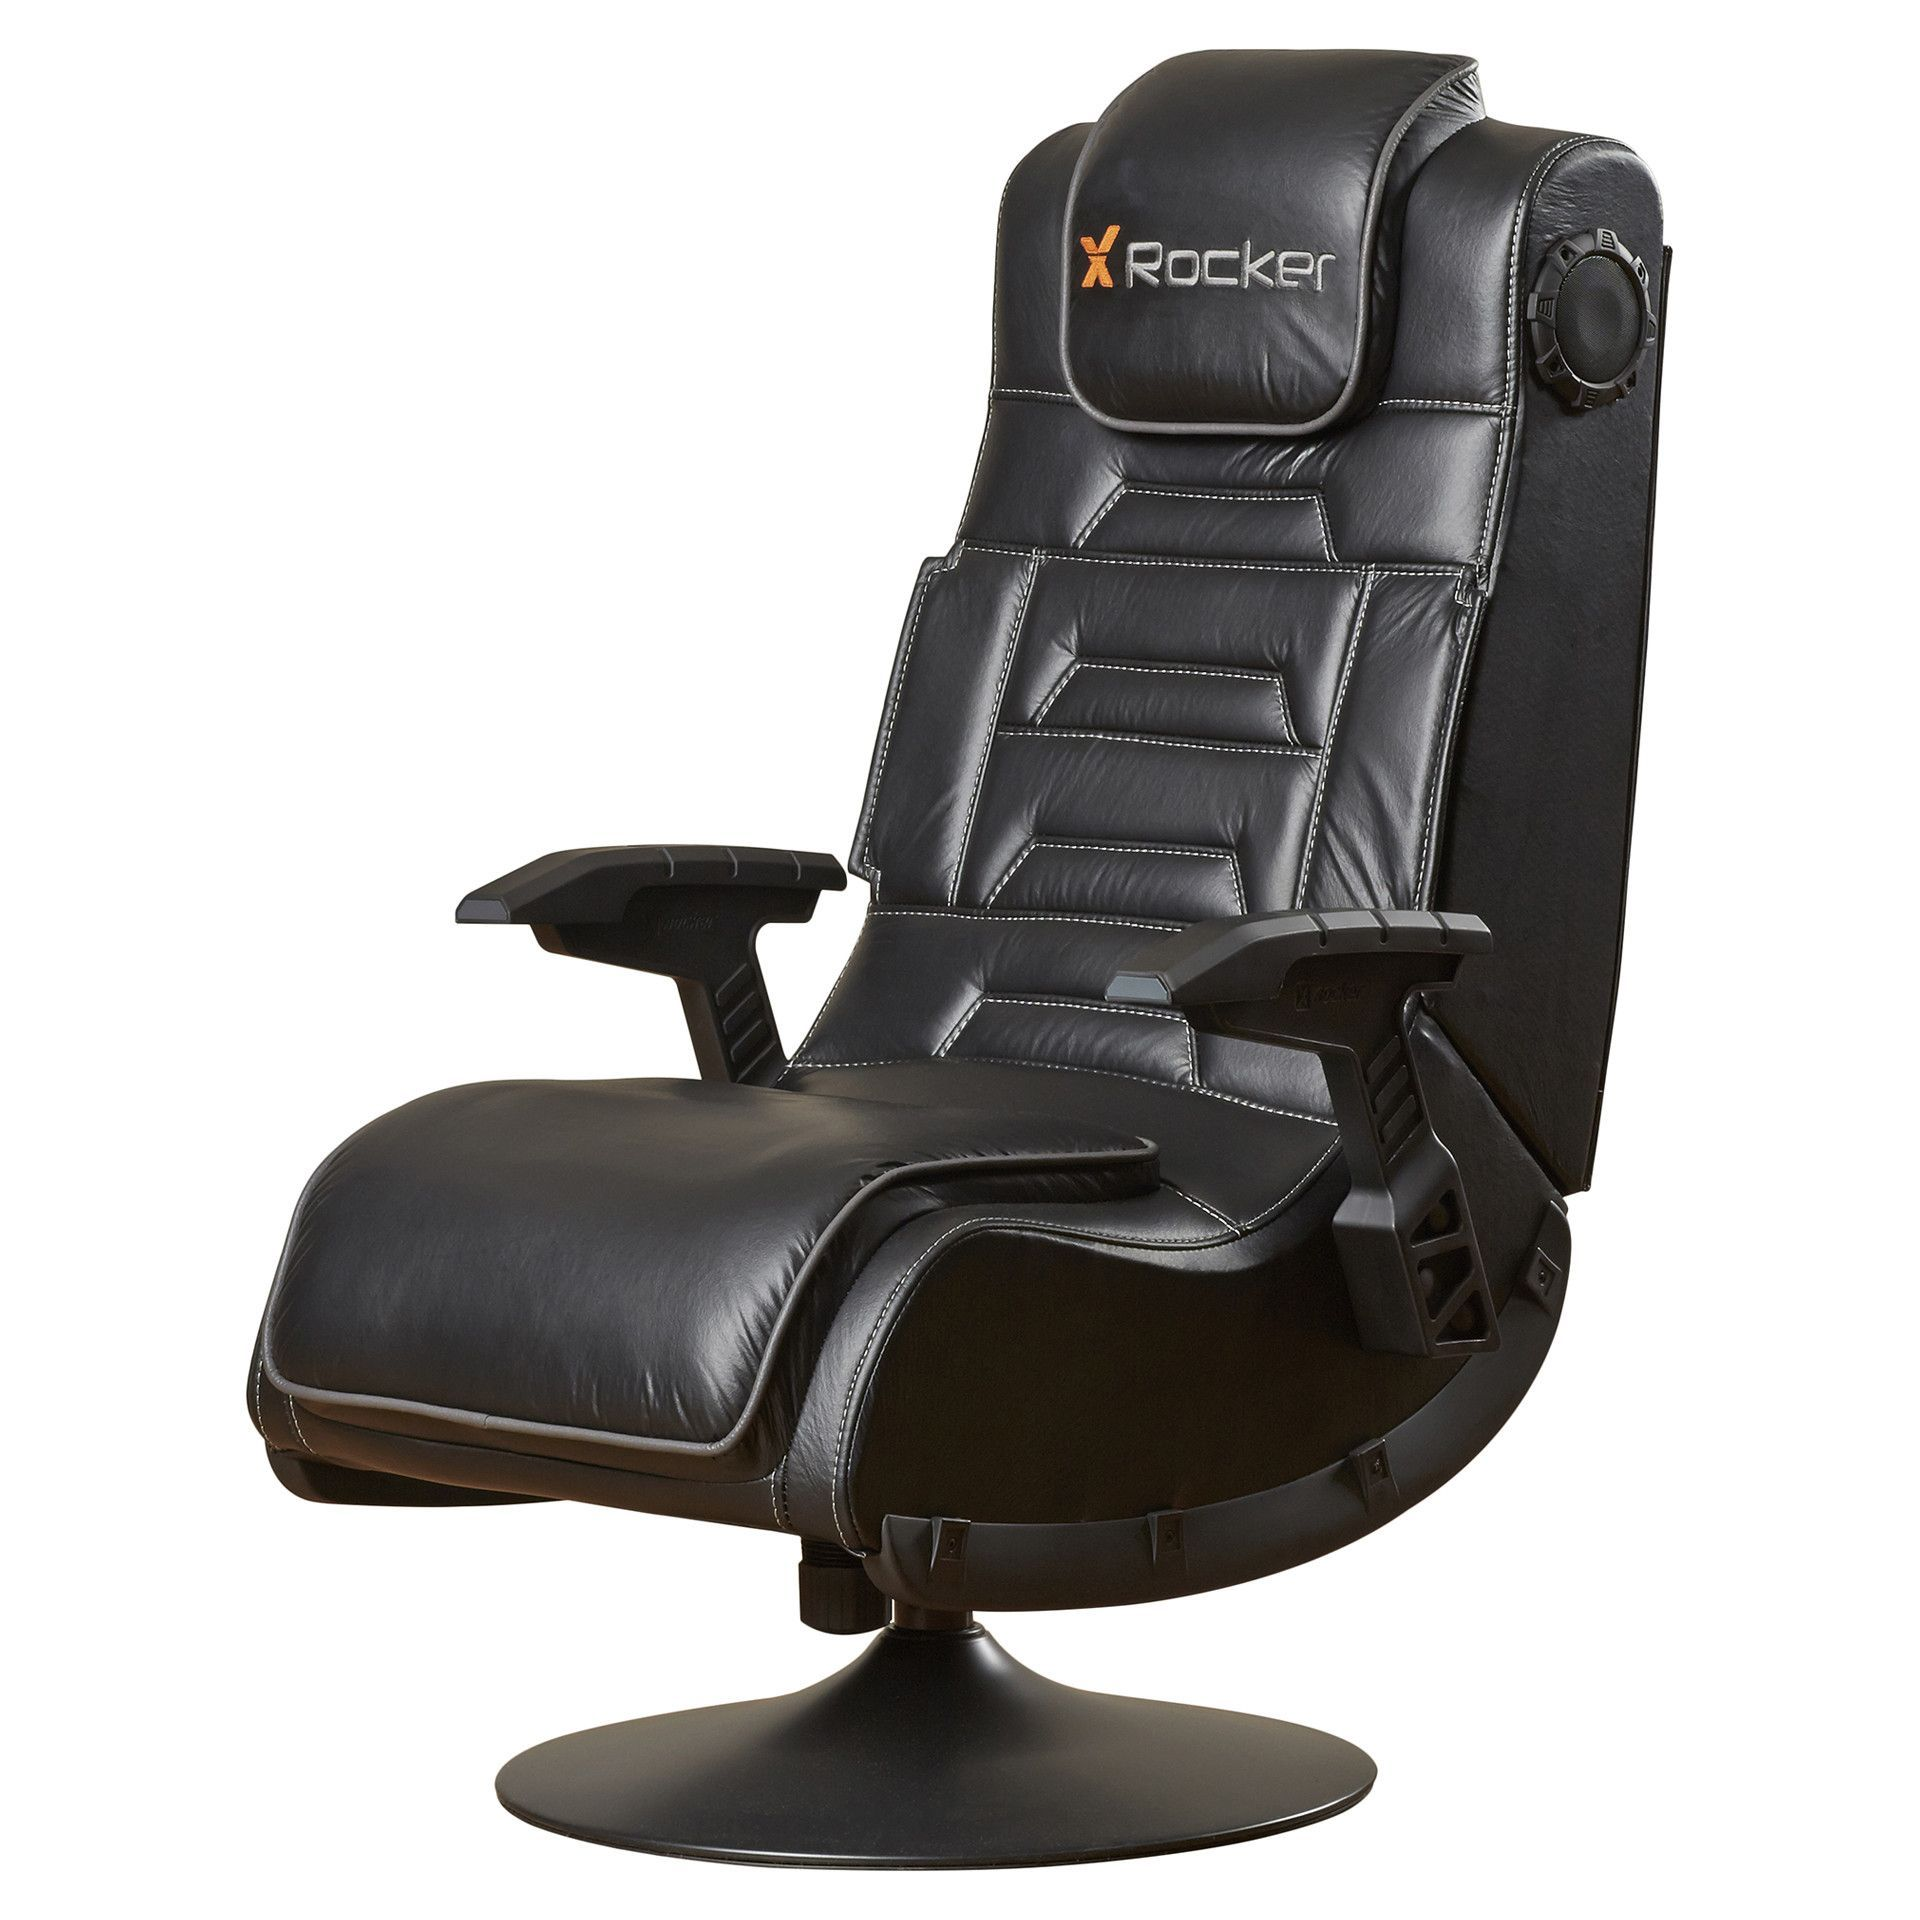 Features Ergonomic design with full back support. Side